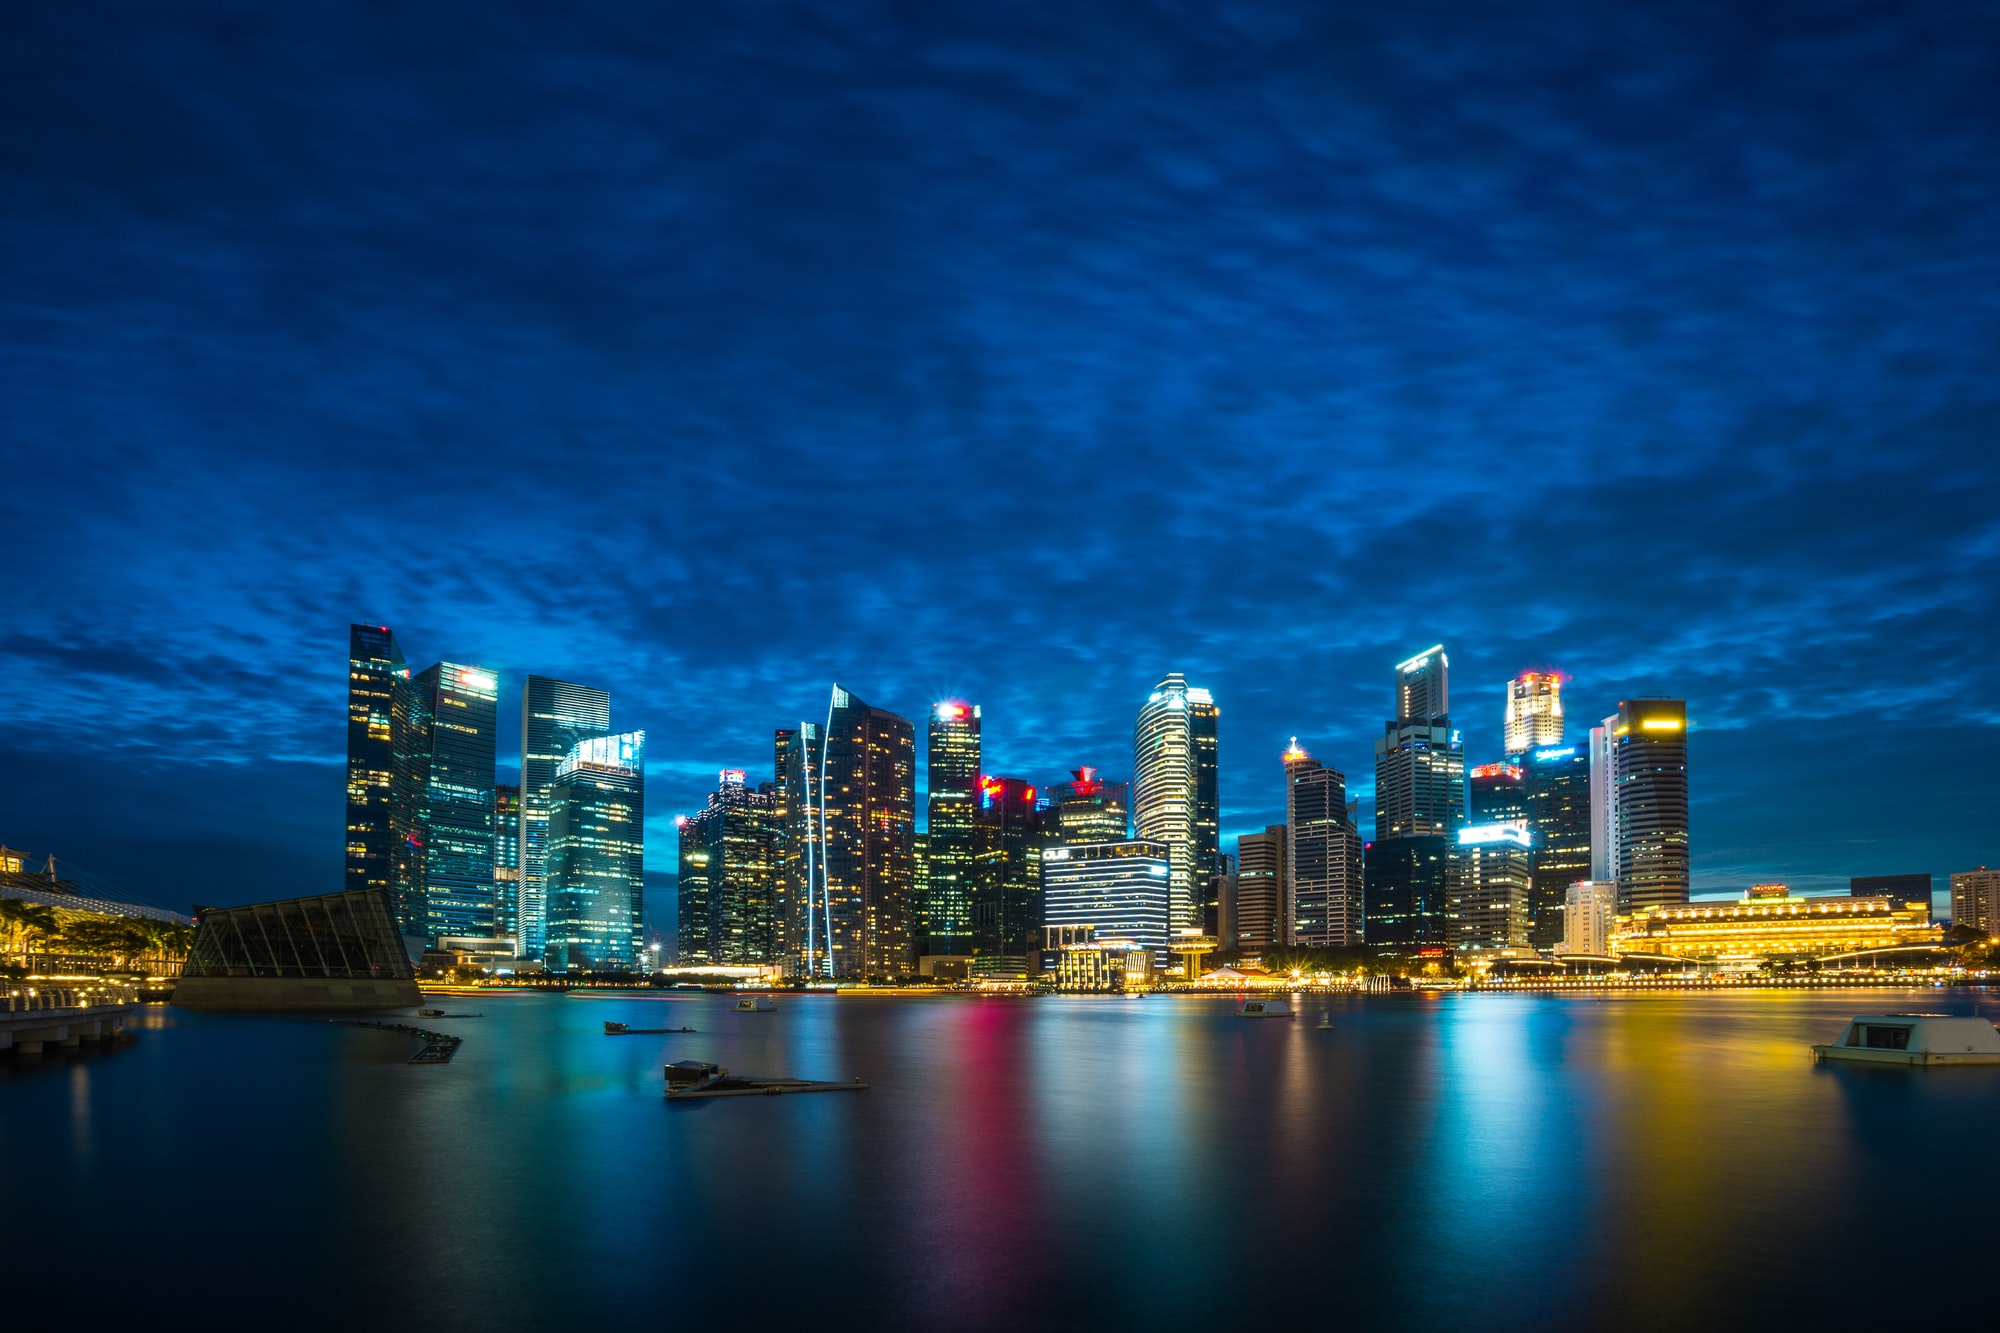 Understanding how Singapore unlocked its future as a technology hub